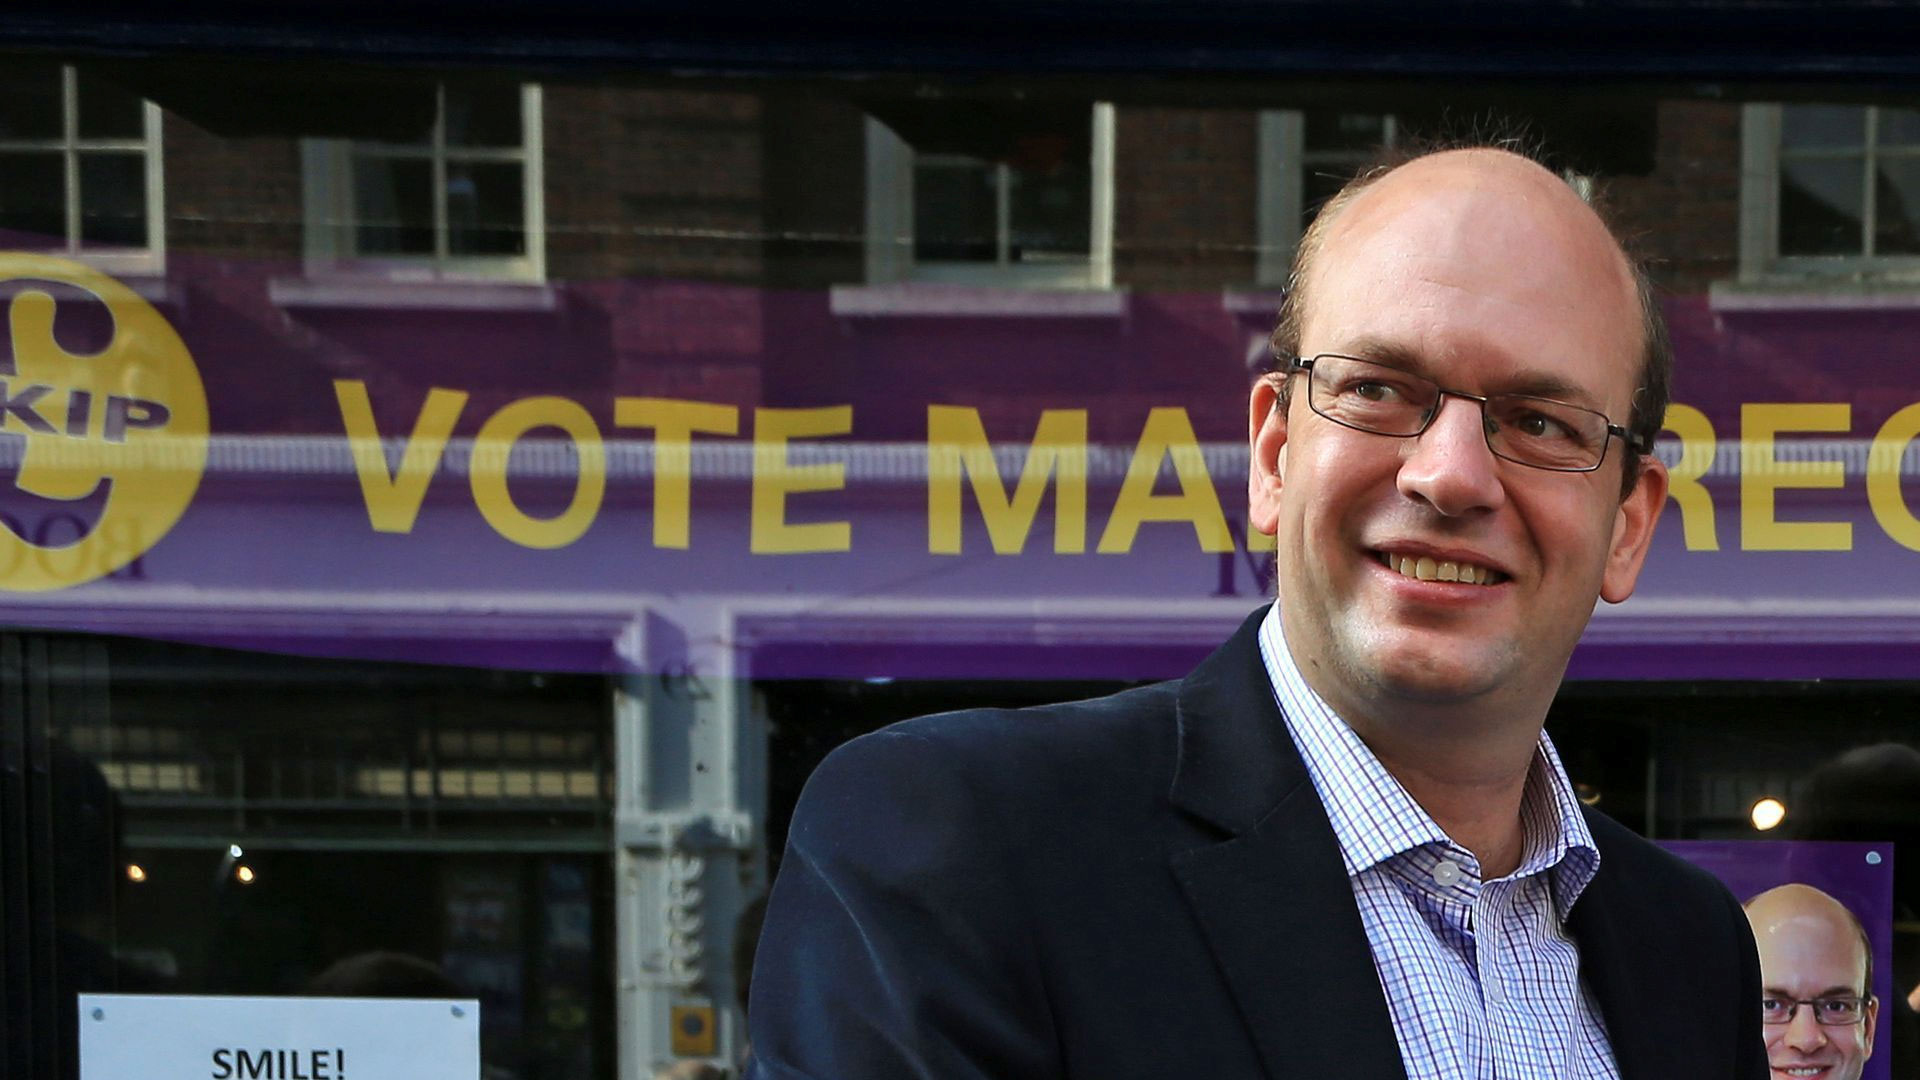 Former Conservative Party MP Mark Reckless campaigning for Ukip during the Rochester and Strood by-election.